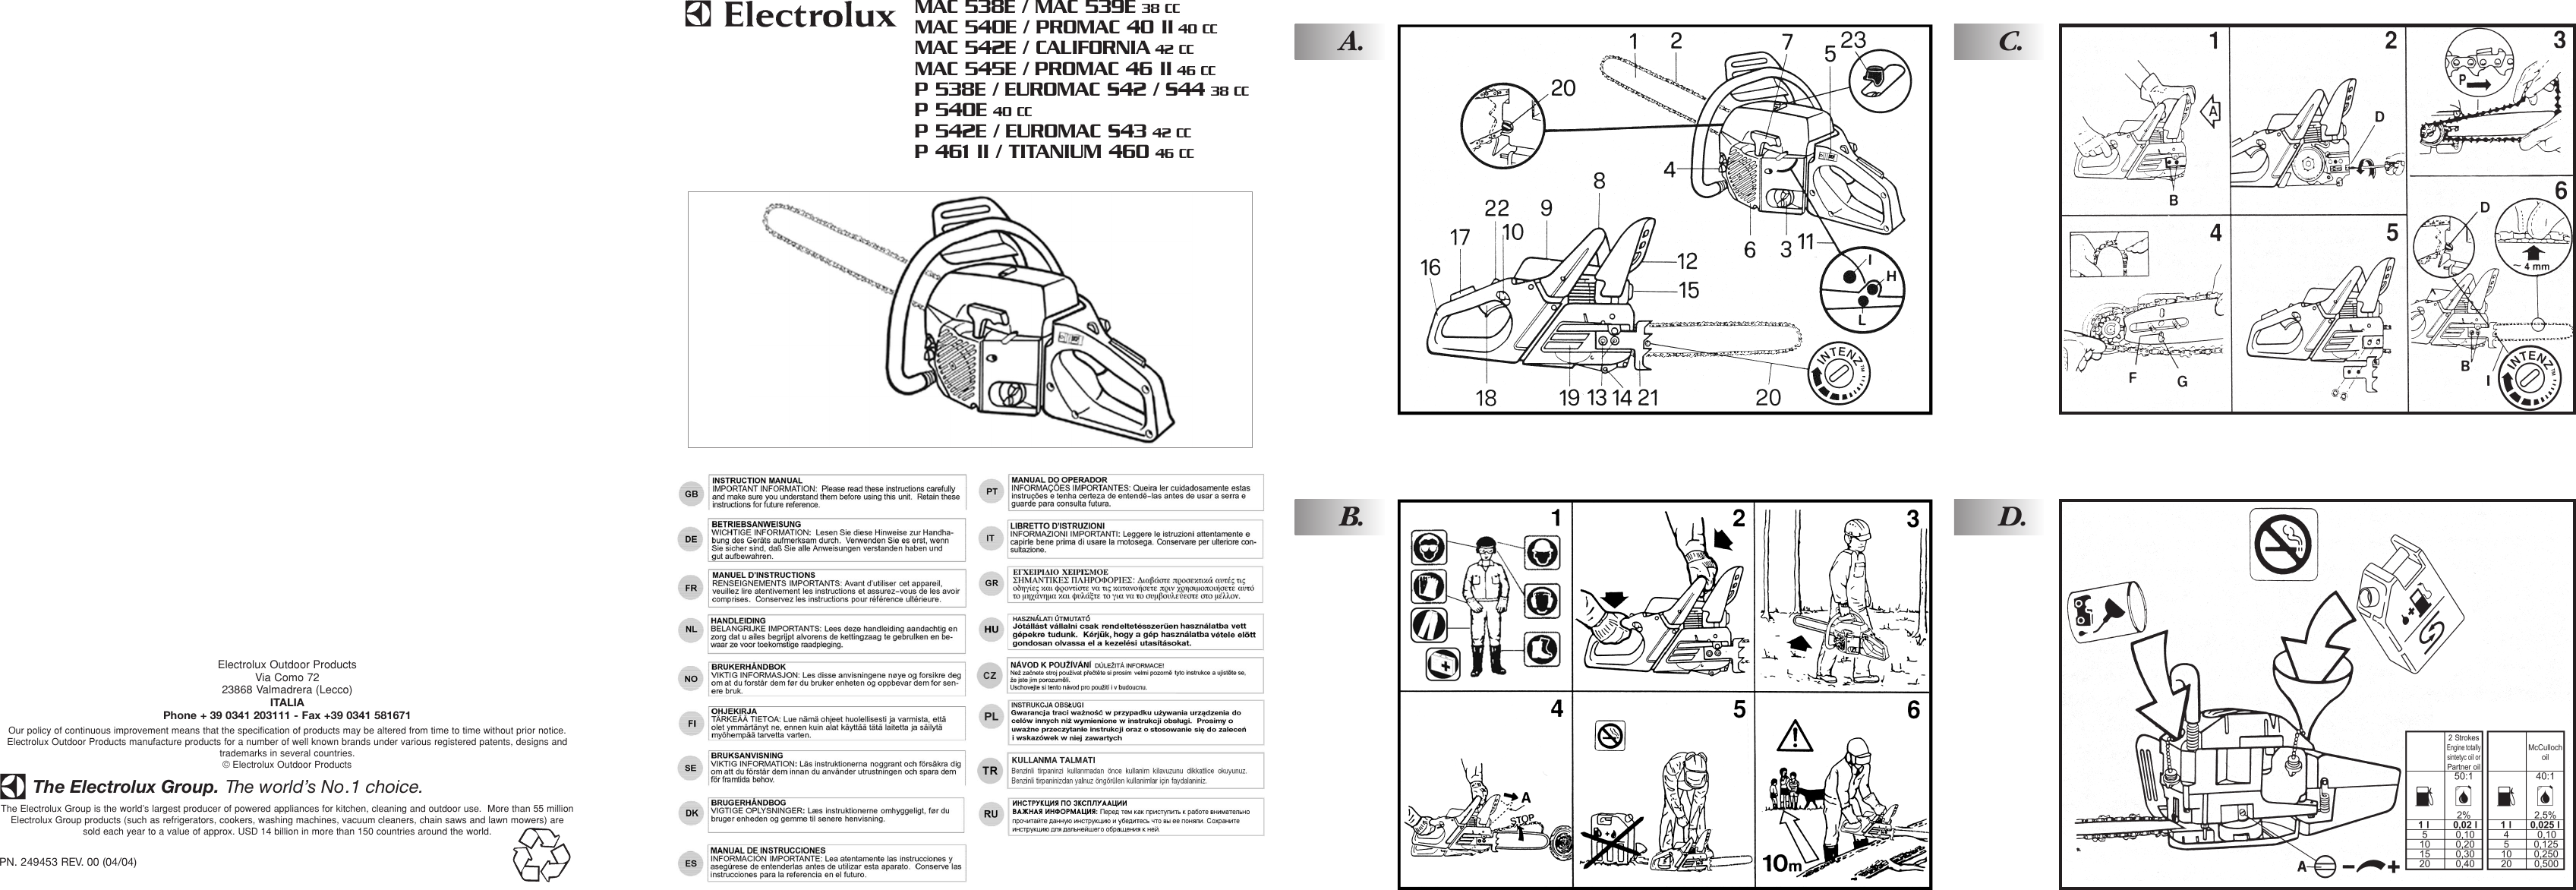 Mcculloch 250 Manual Pick Up 2 4 Mass Air Flow Sensor On 1996 Nissan Sentra Engine Diagram Related Articles Array Electrolux 95390011700 Users Om Euromac S42 Rh Usermanual Wiki